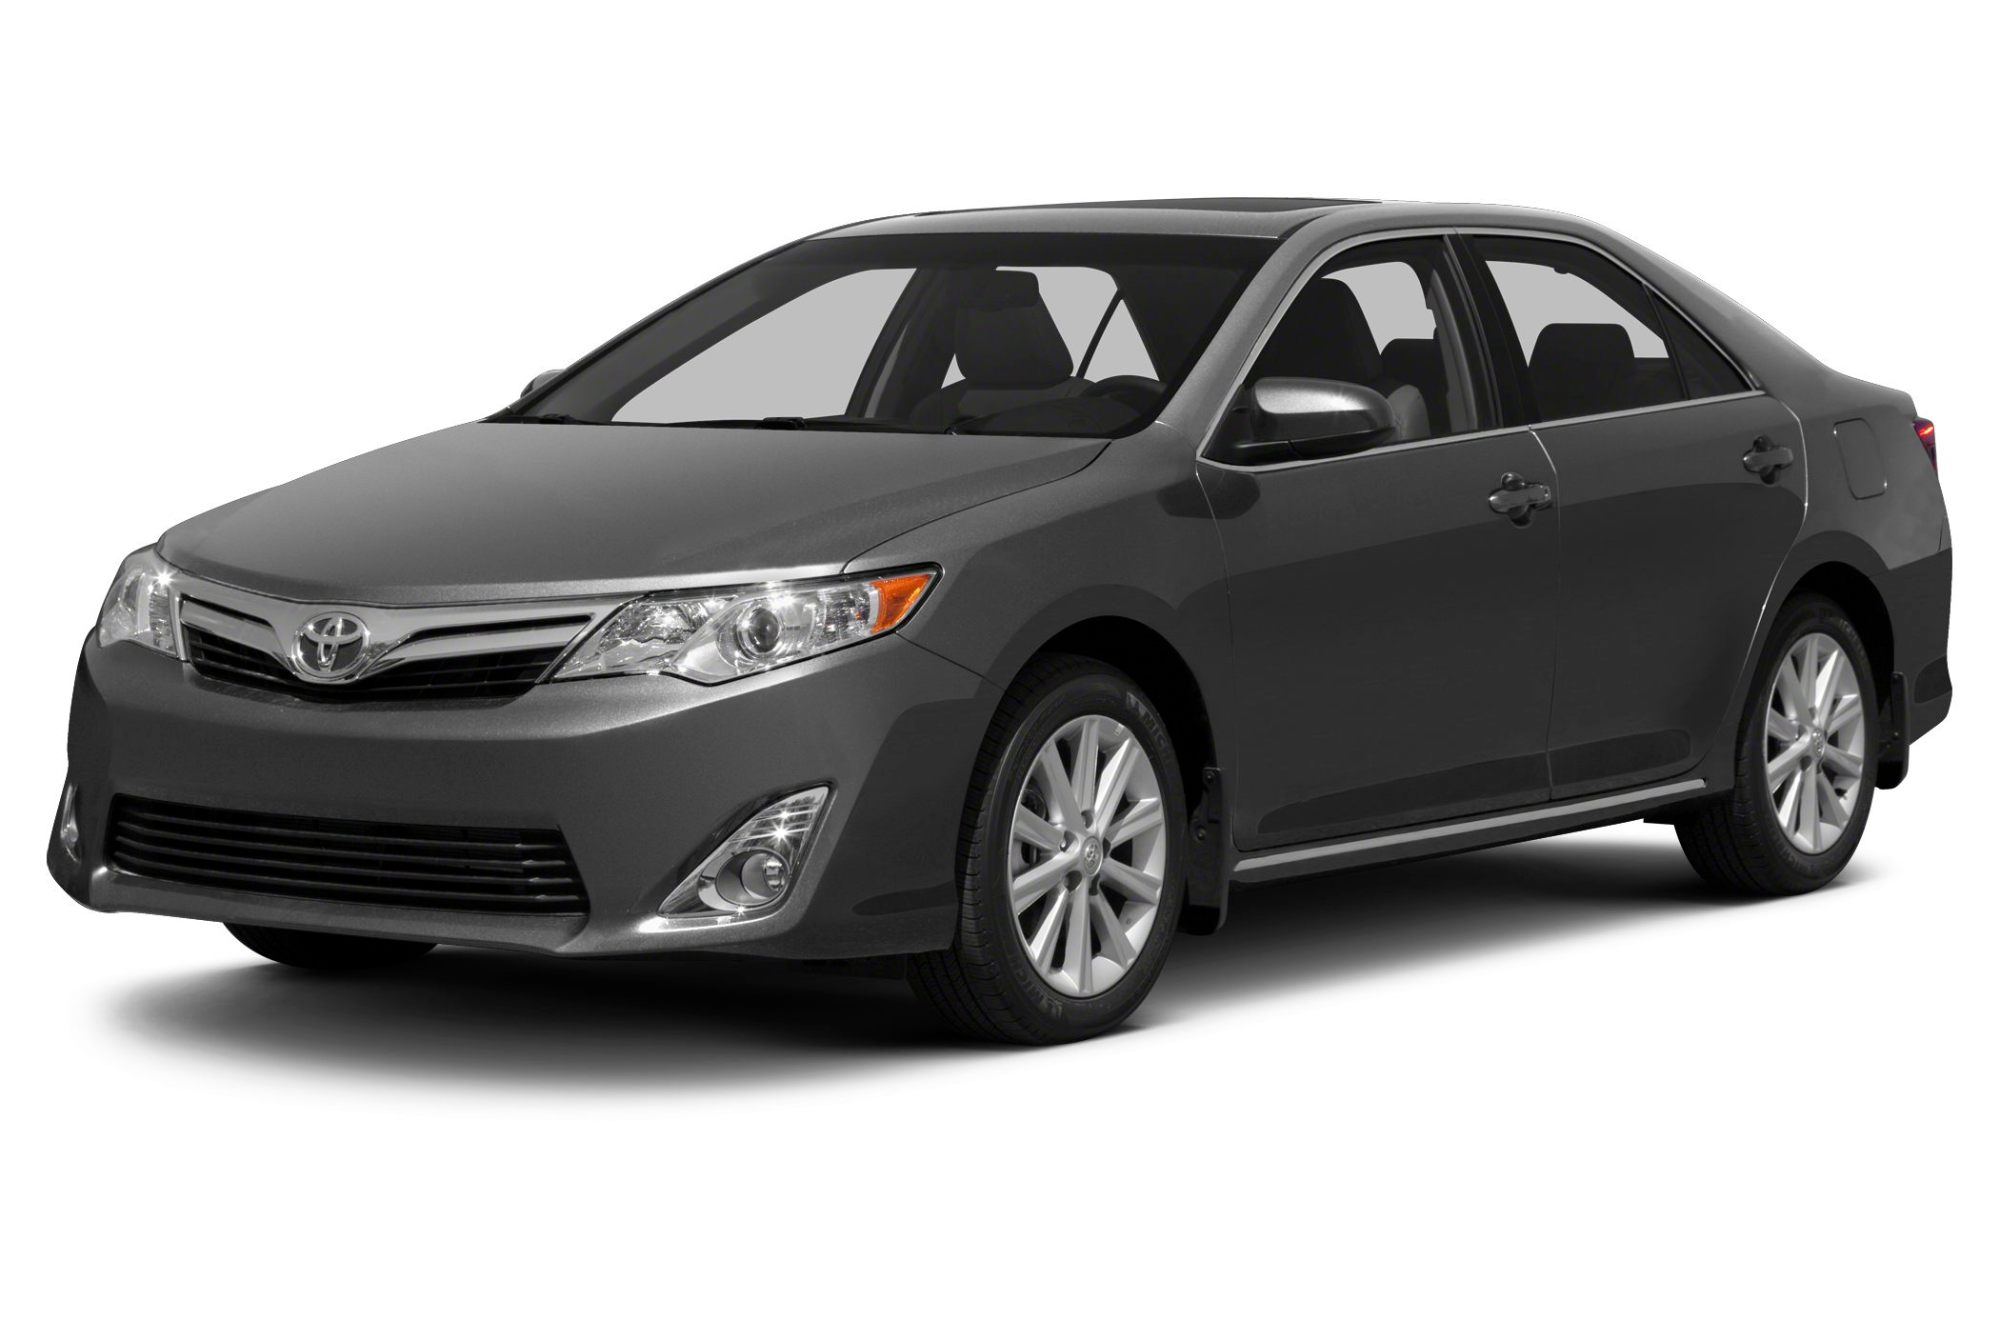 hight resolution of toyota camry le engine diagram of 2012